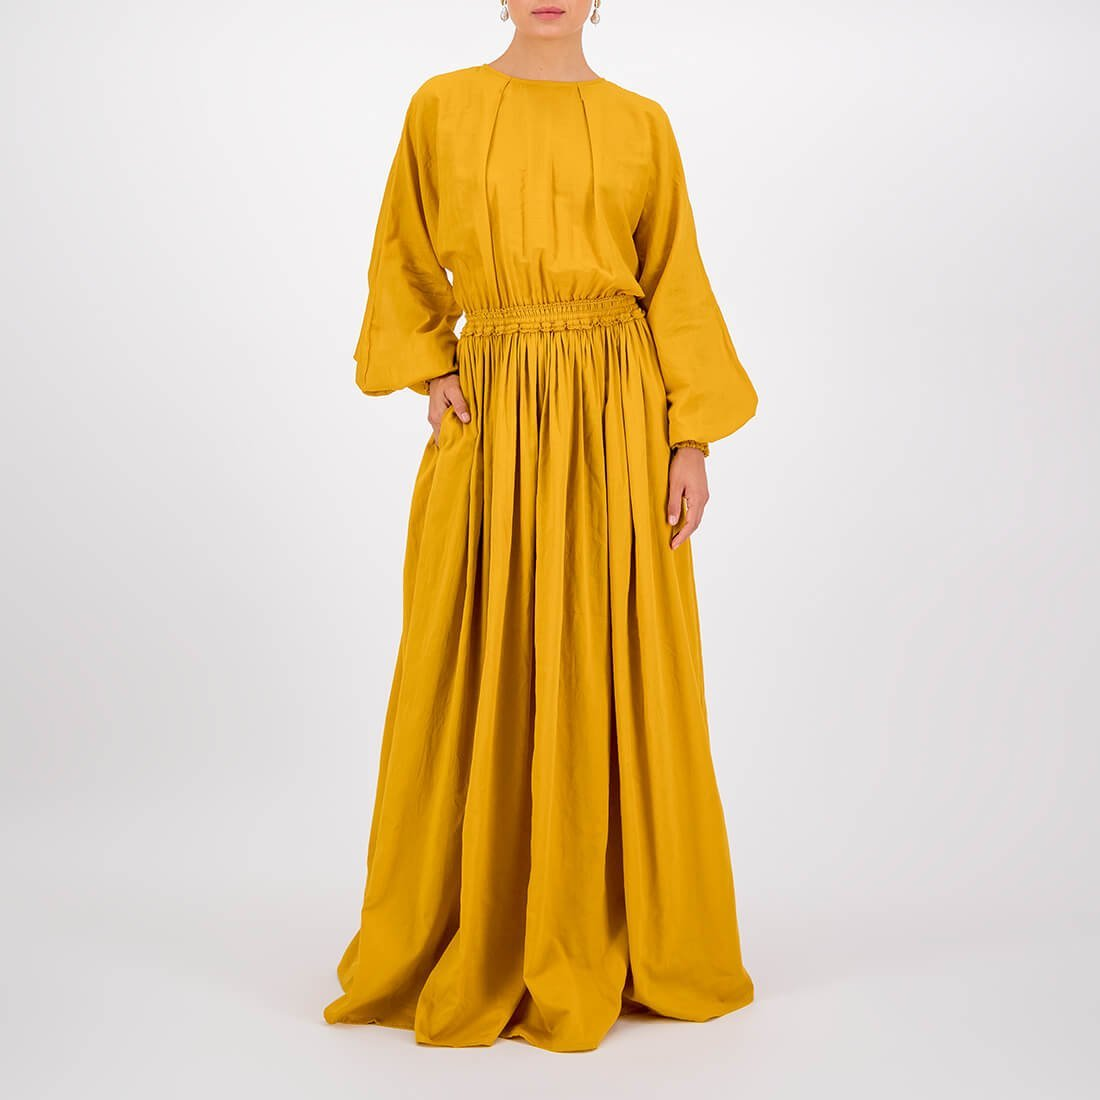 Cotton floor-length, high-neck dress 2